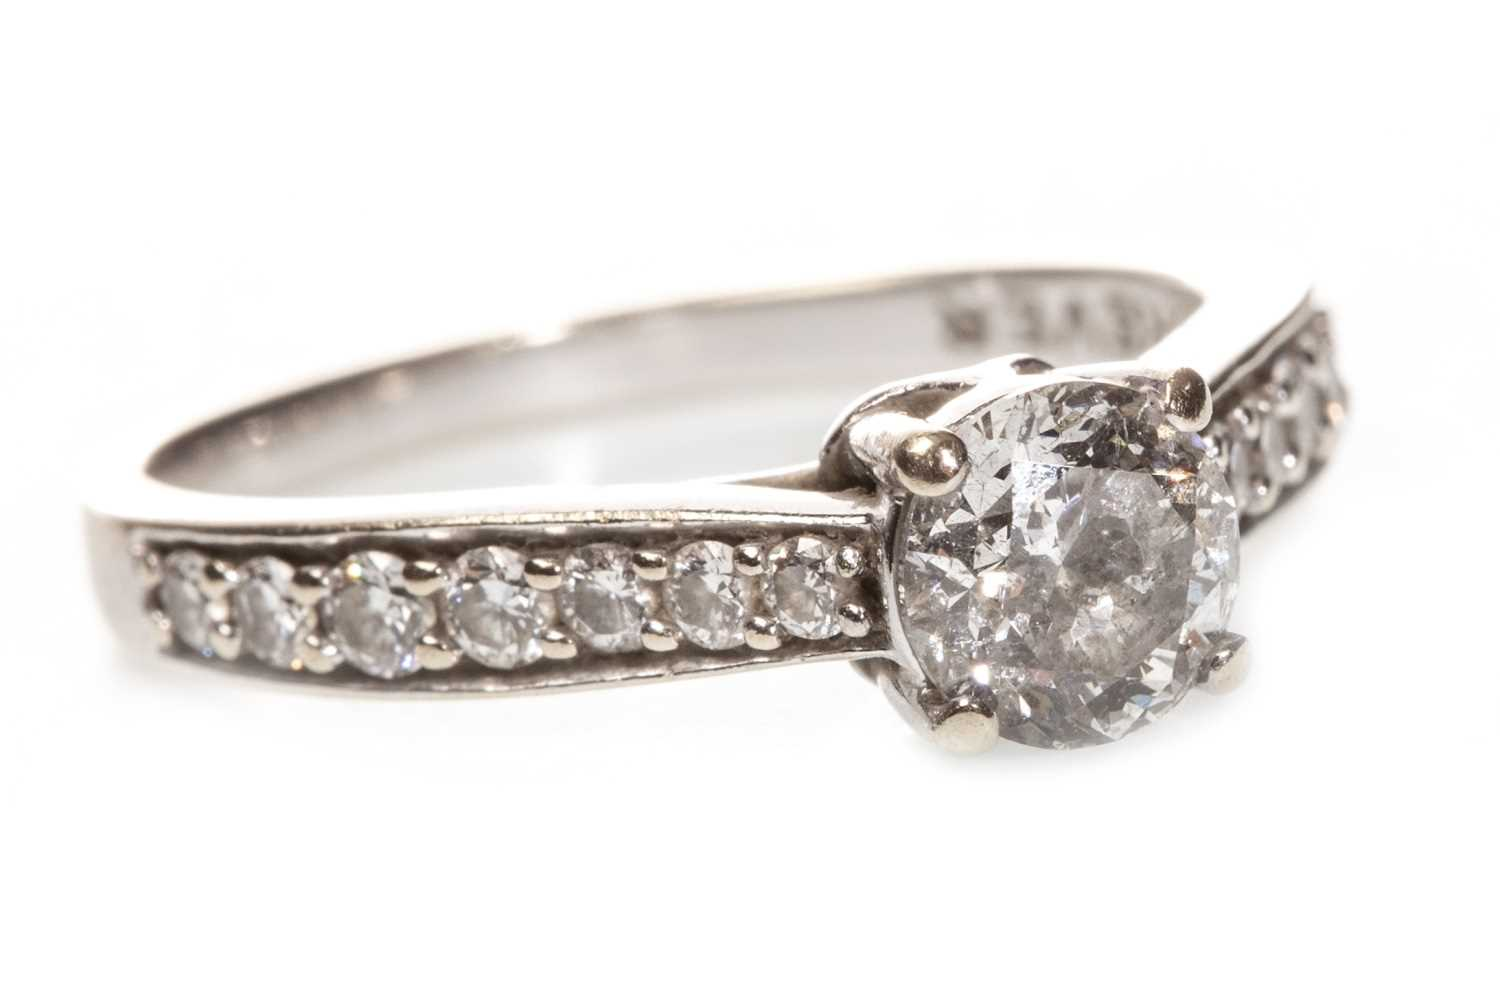 Lot 39-A DIAMOND SOLITAIRE RING